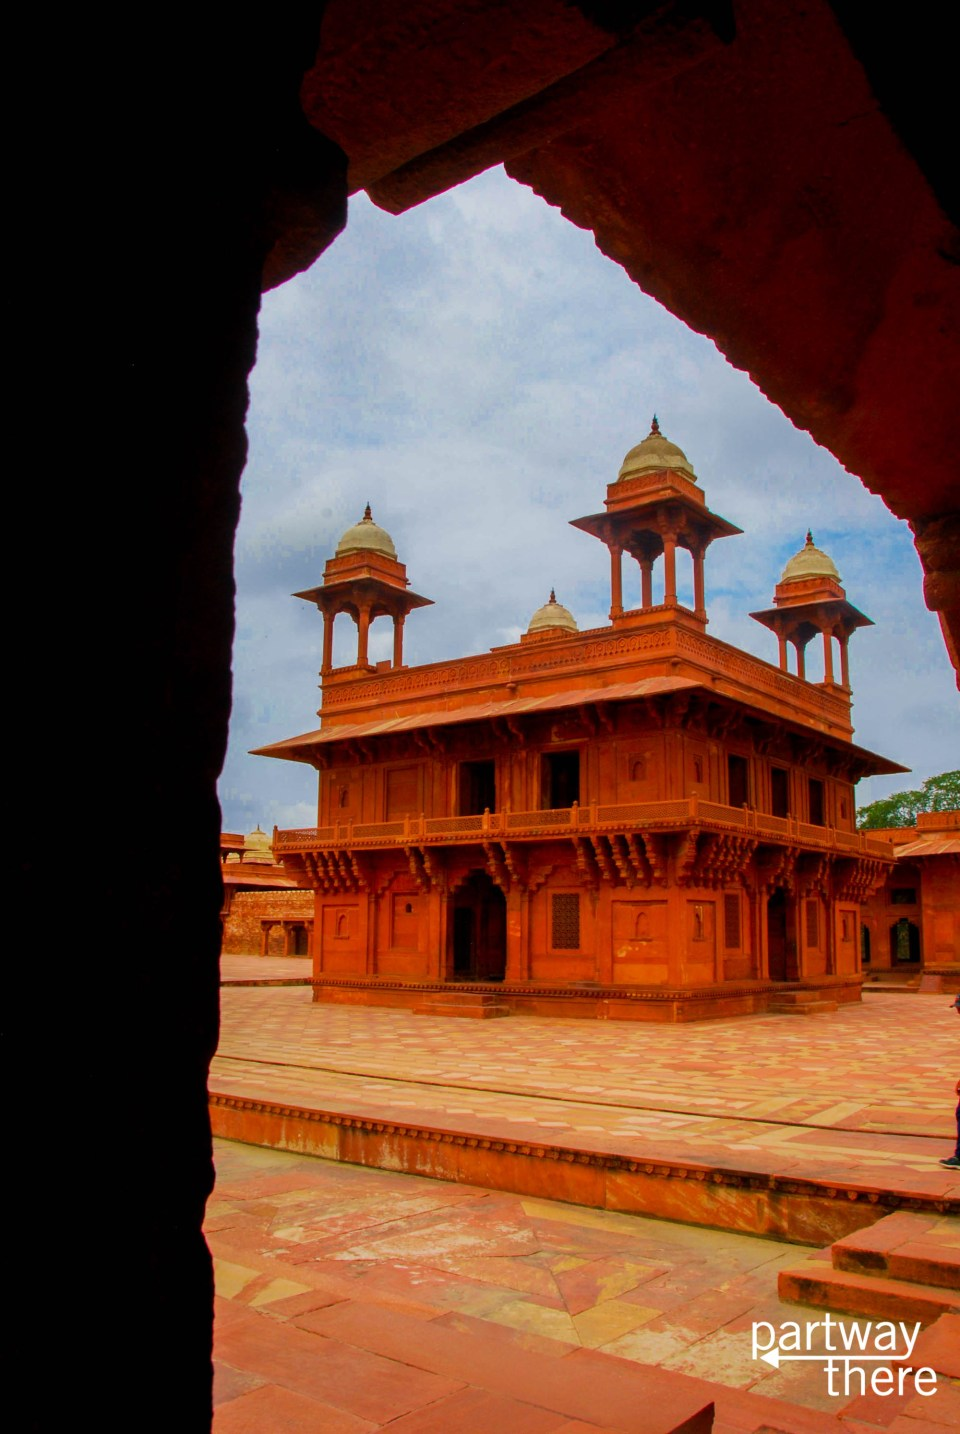 The Diwan-i-Khas at Fatehpur Sikri